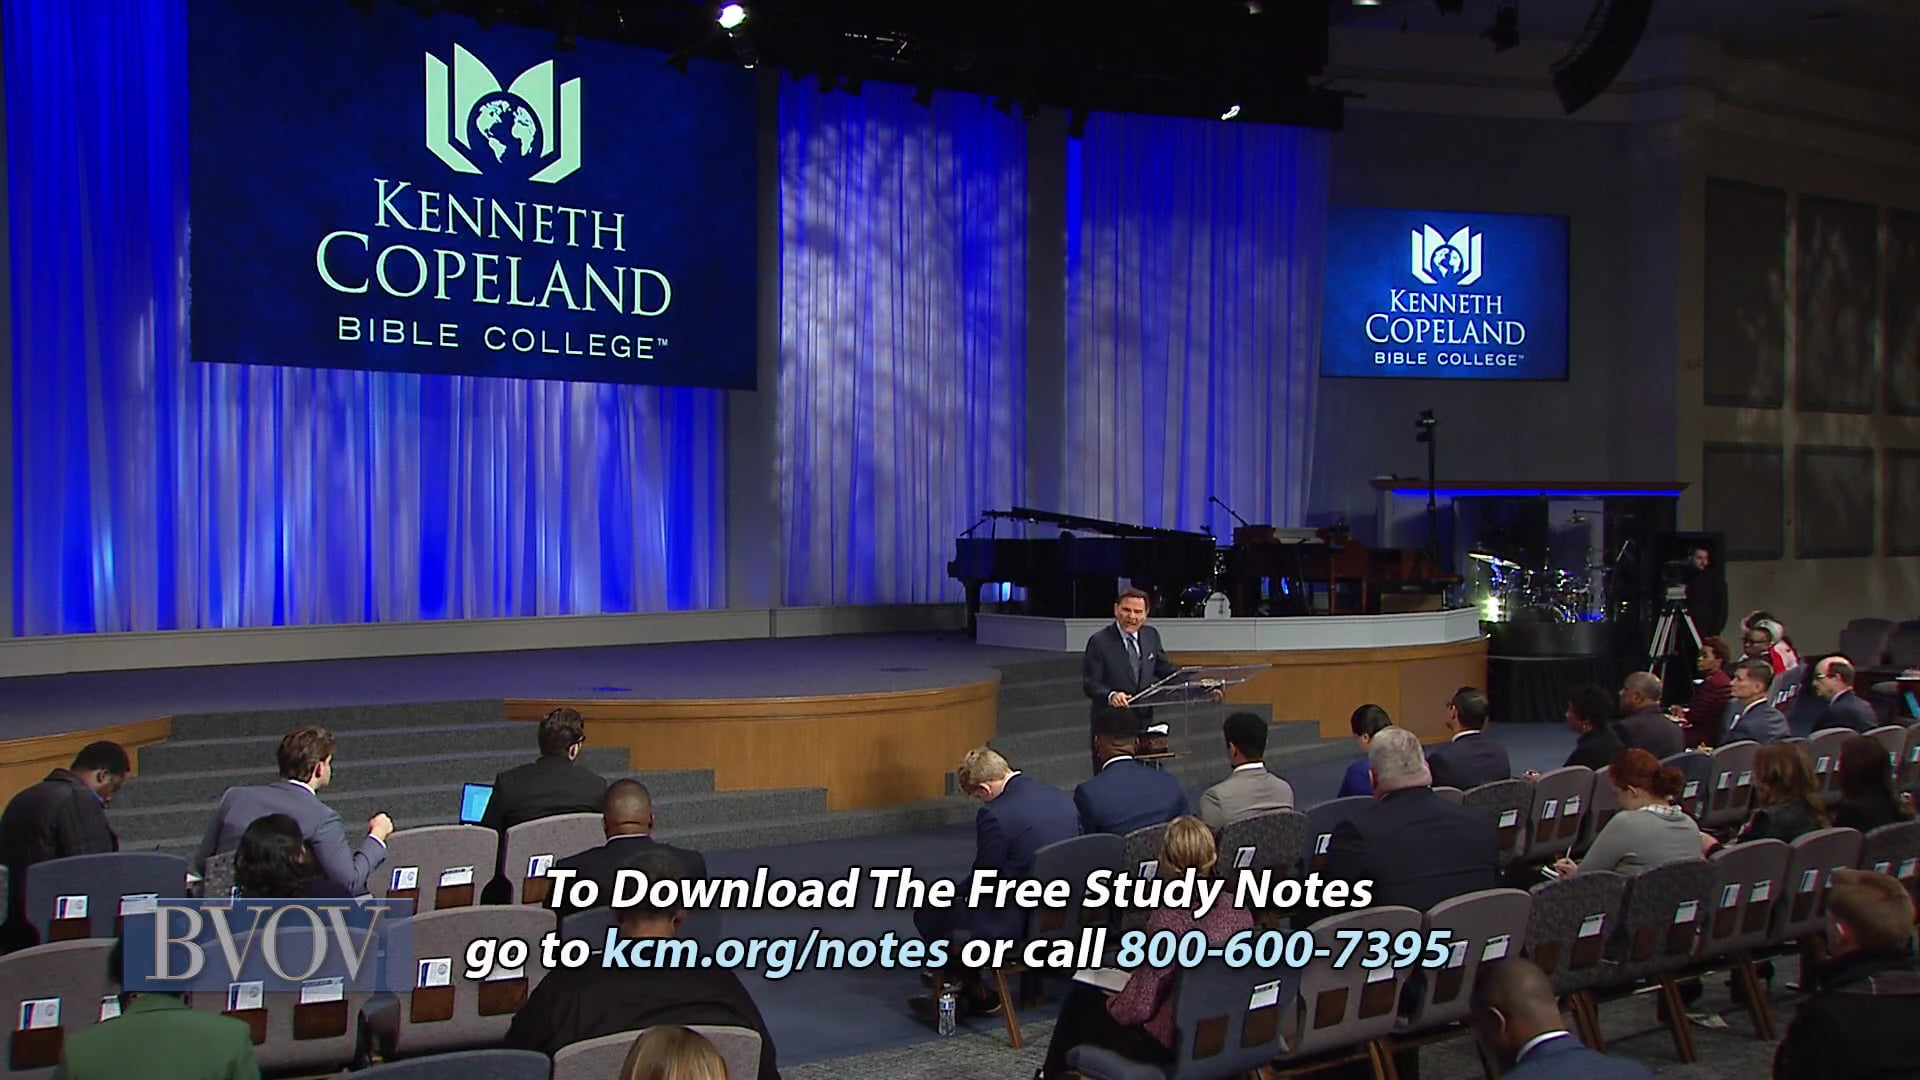 Don't mess with God's covenant people! Watch Kenneth Copeland on Believer's Voice of Victory as he explains how the covenant will defend you. As you begin this new year, learn how to exercise your authority through Jesus to defeat every evil spirit. You have been delivered from the kingdom of darkness!